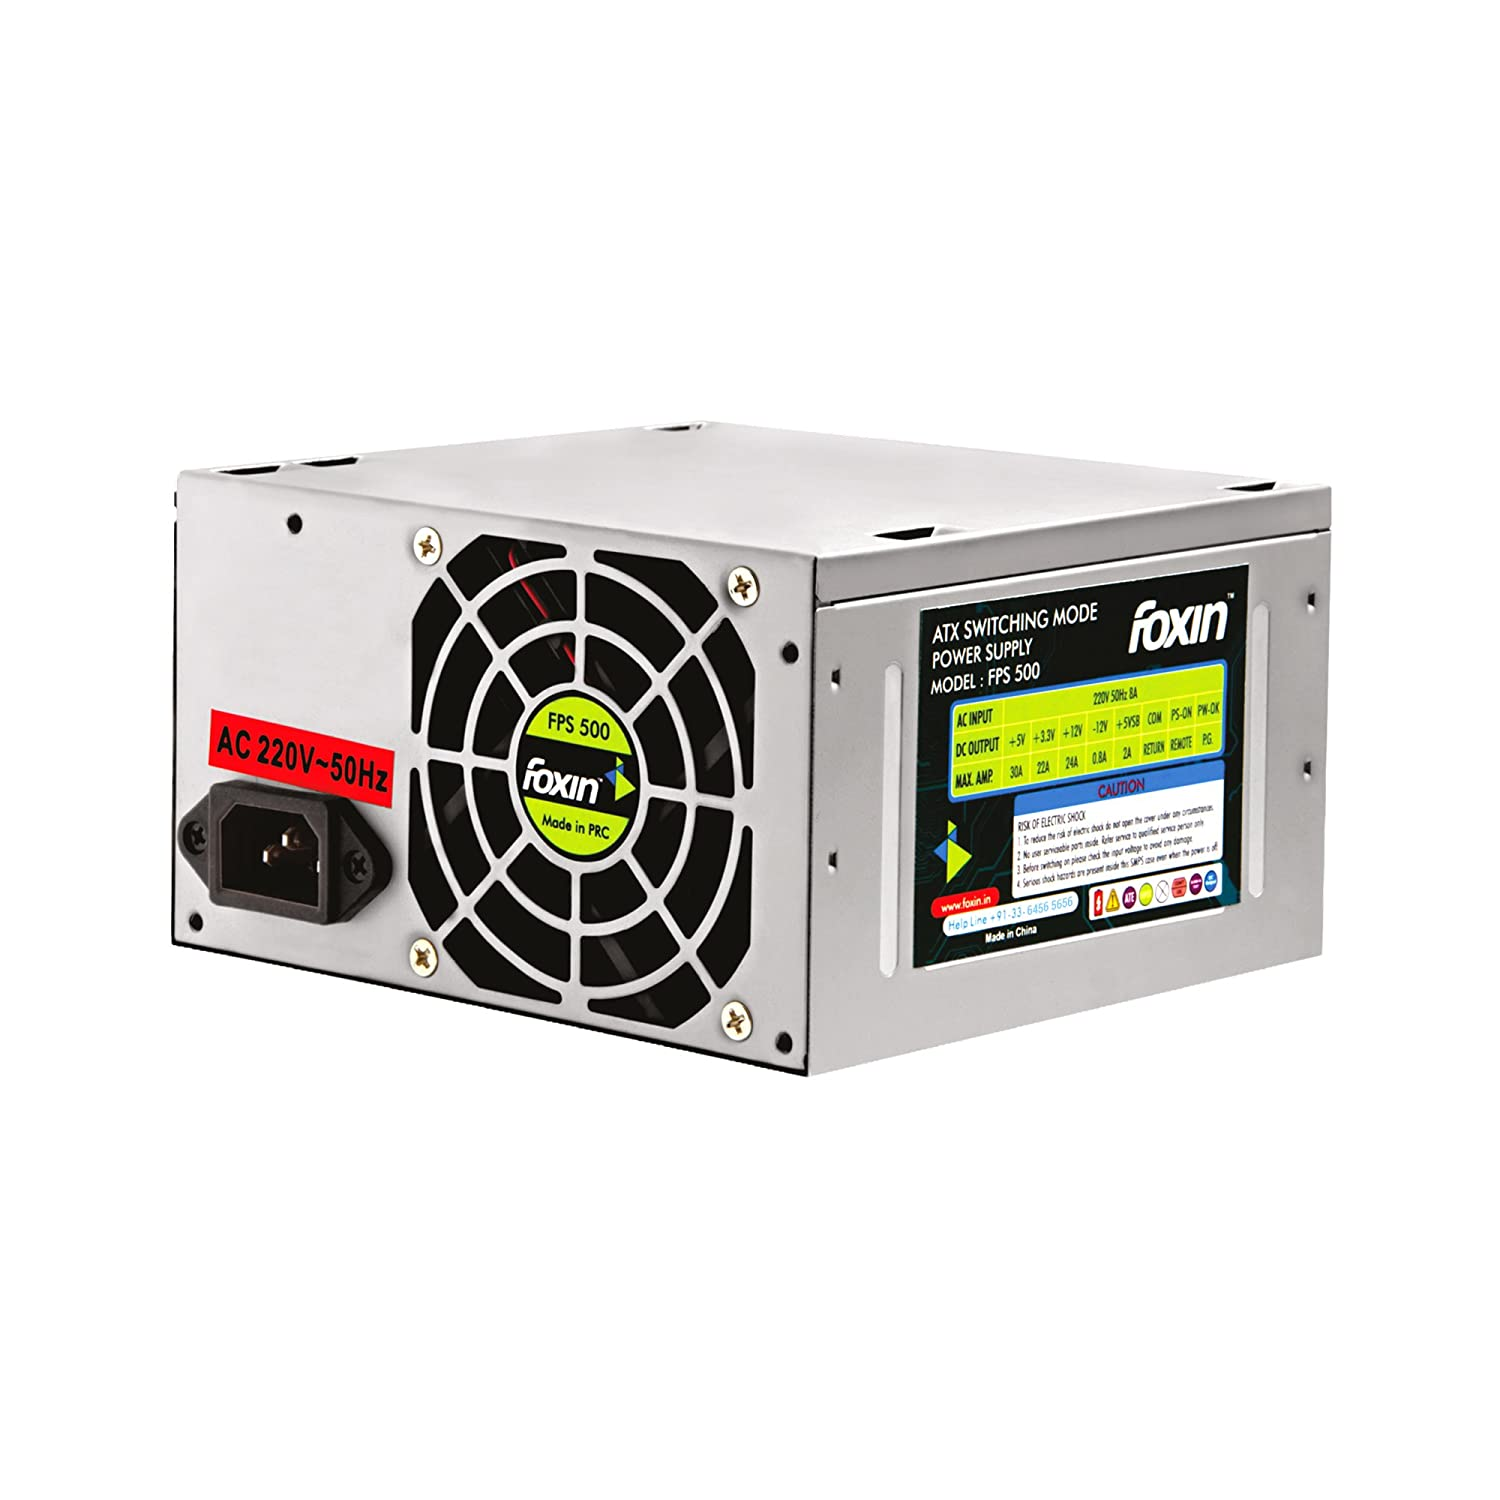 Amazon.in: Buy Foxin FPS 500S SMPS & Power Supply Online at Low ...